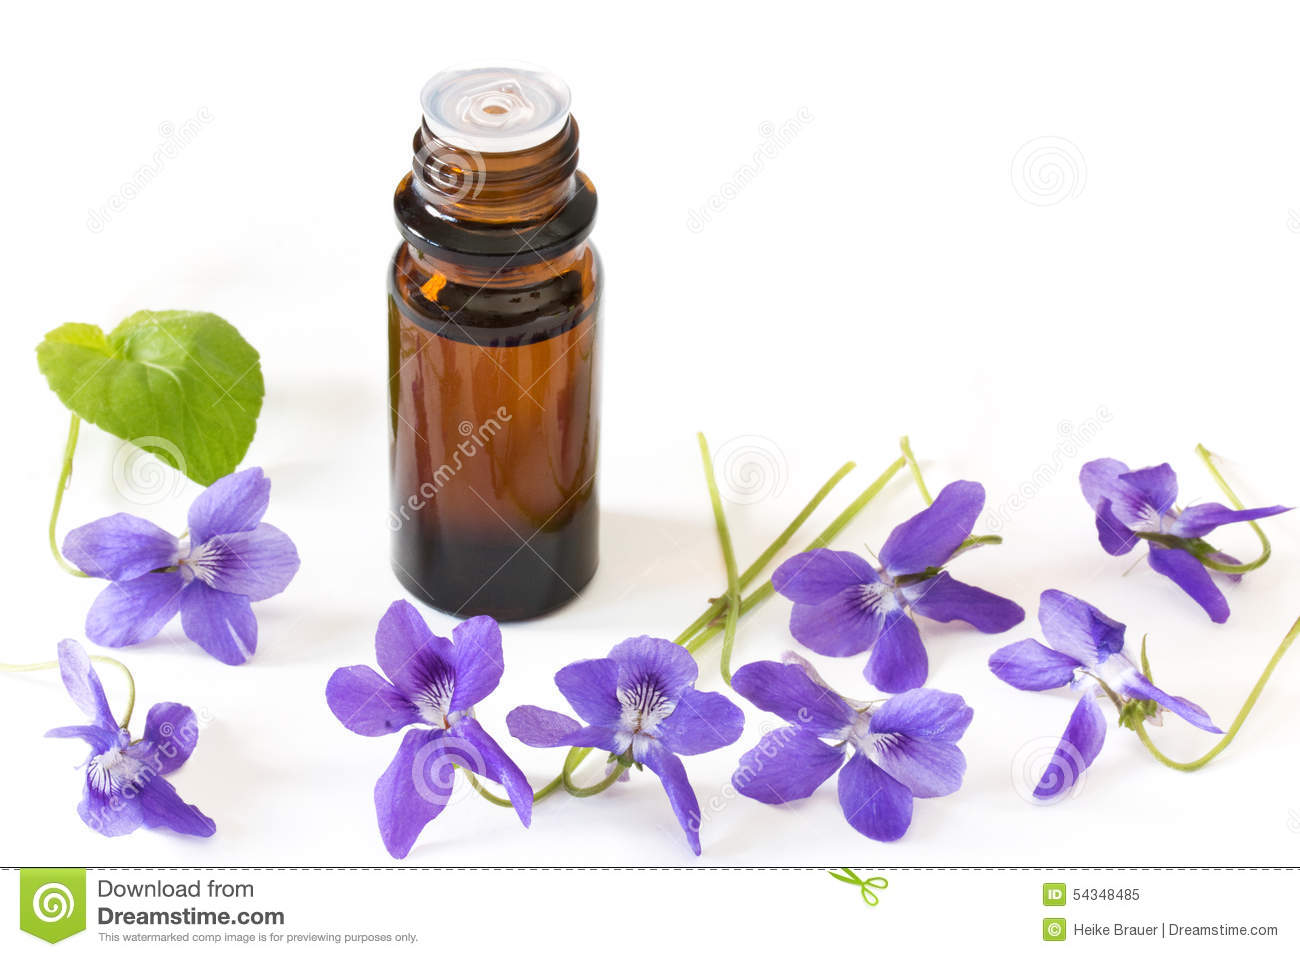 Bach Flower Remedies Of Violets On White Background Stock Image